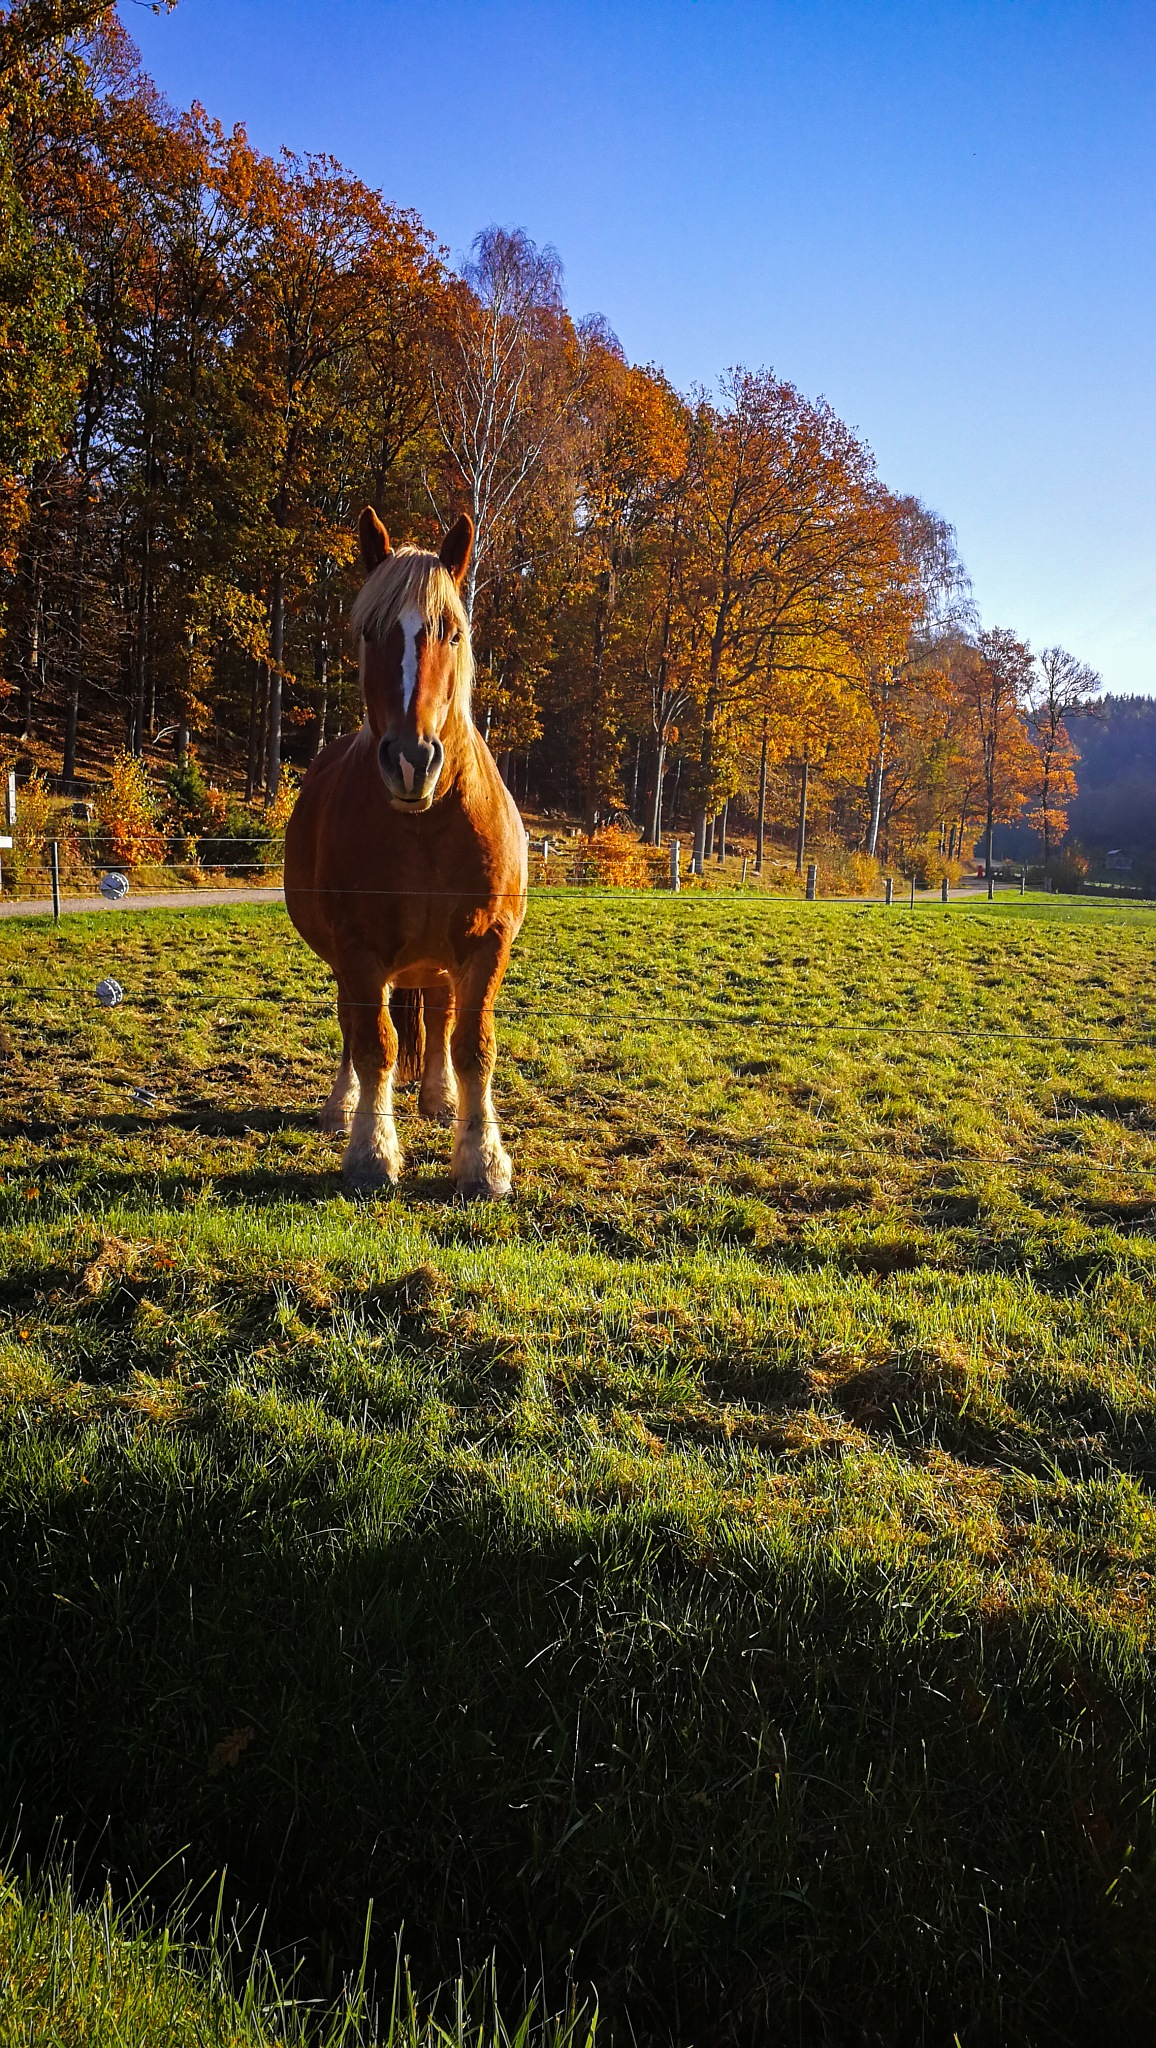 Autumn's color and a horse  by Kristin Carlsson